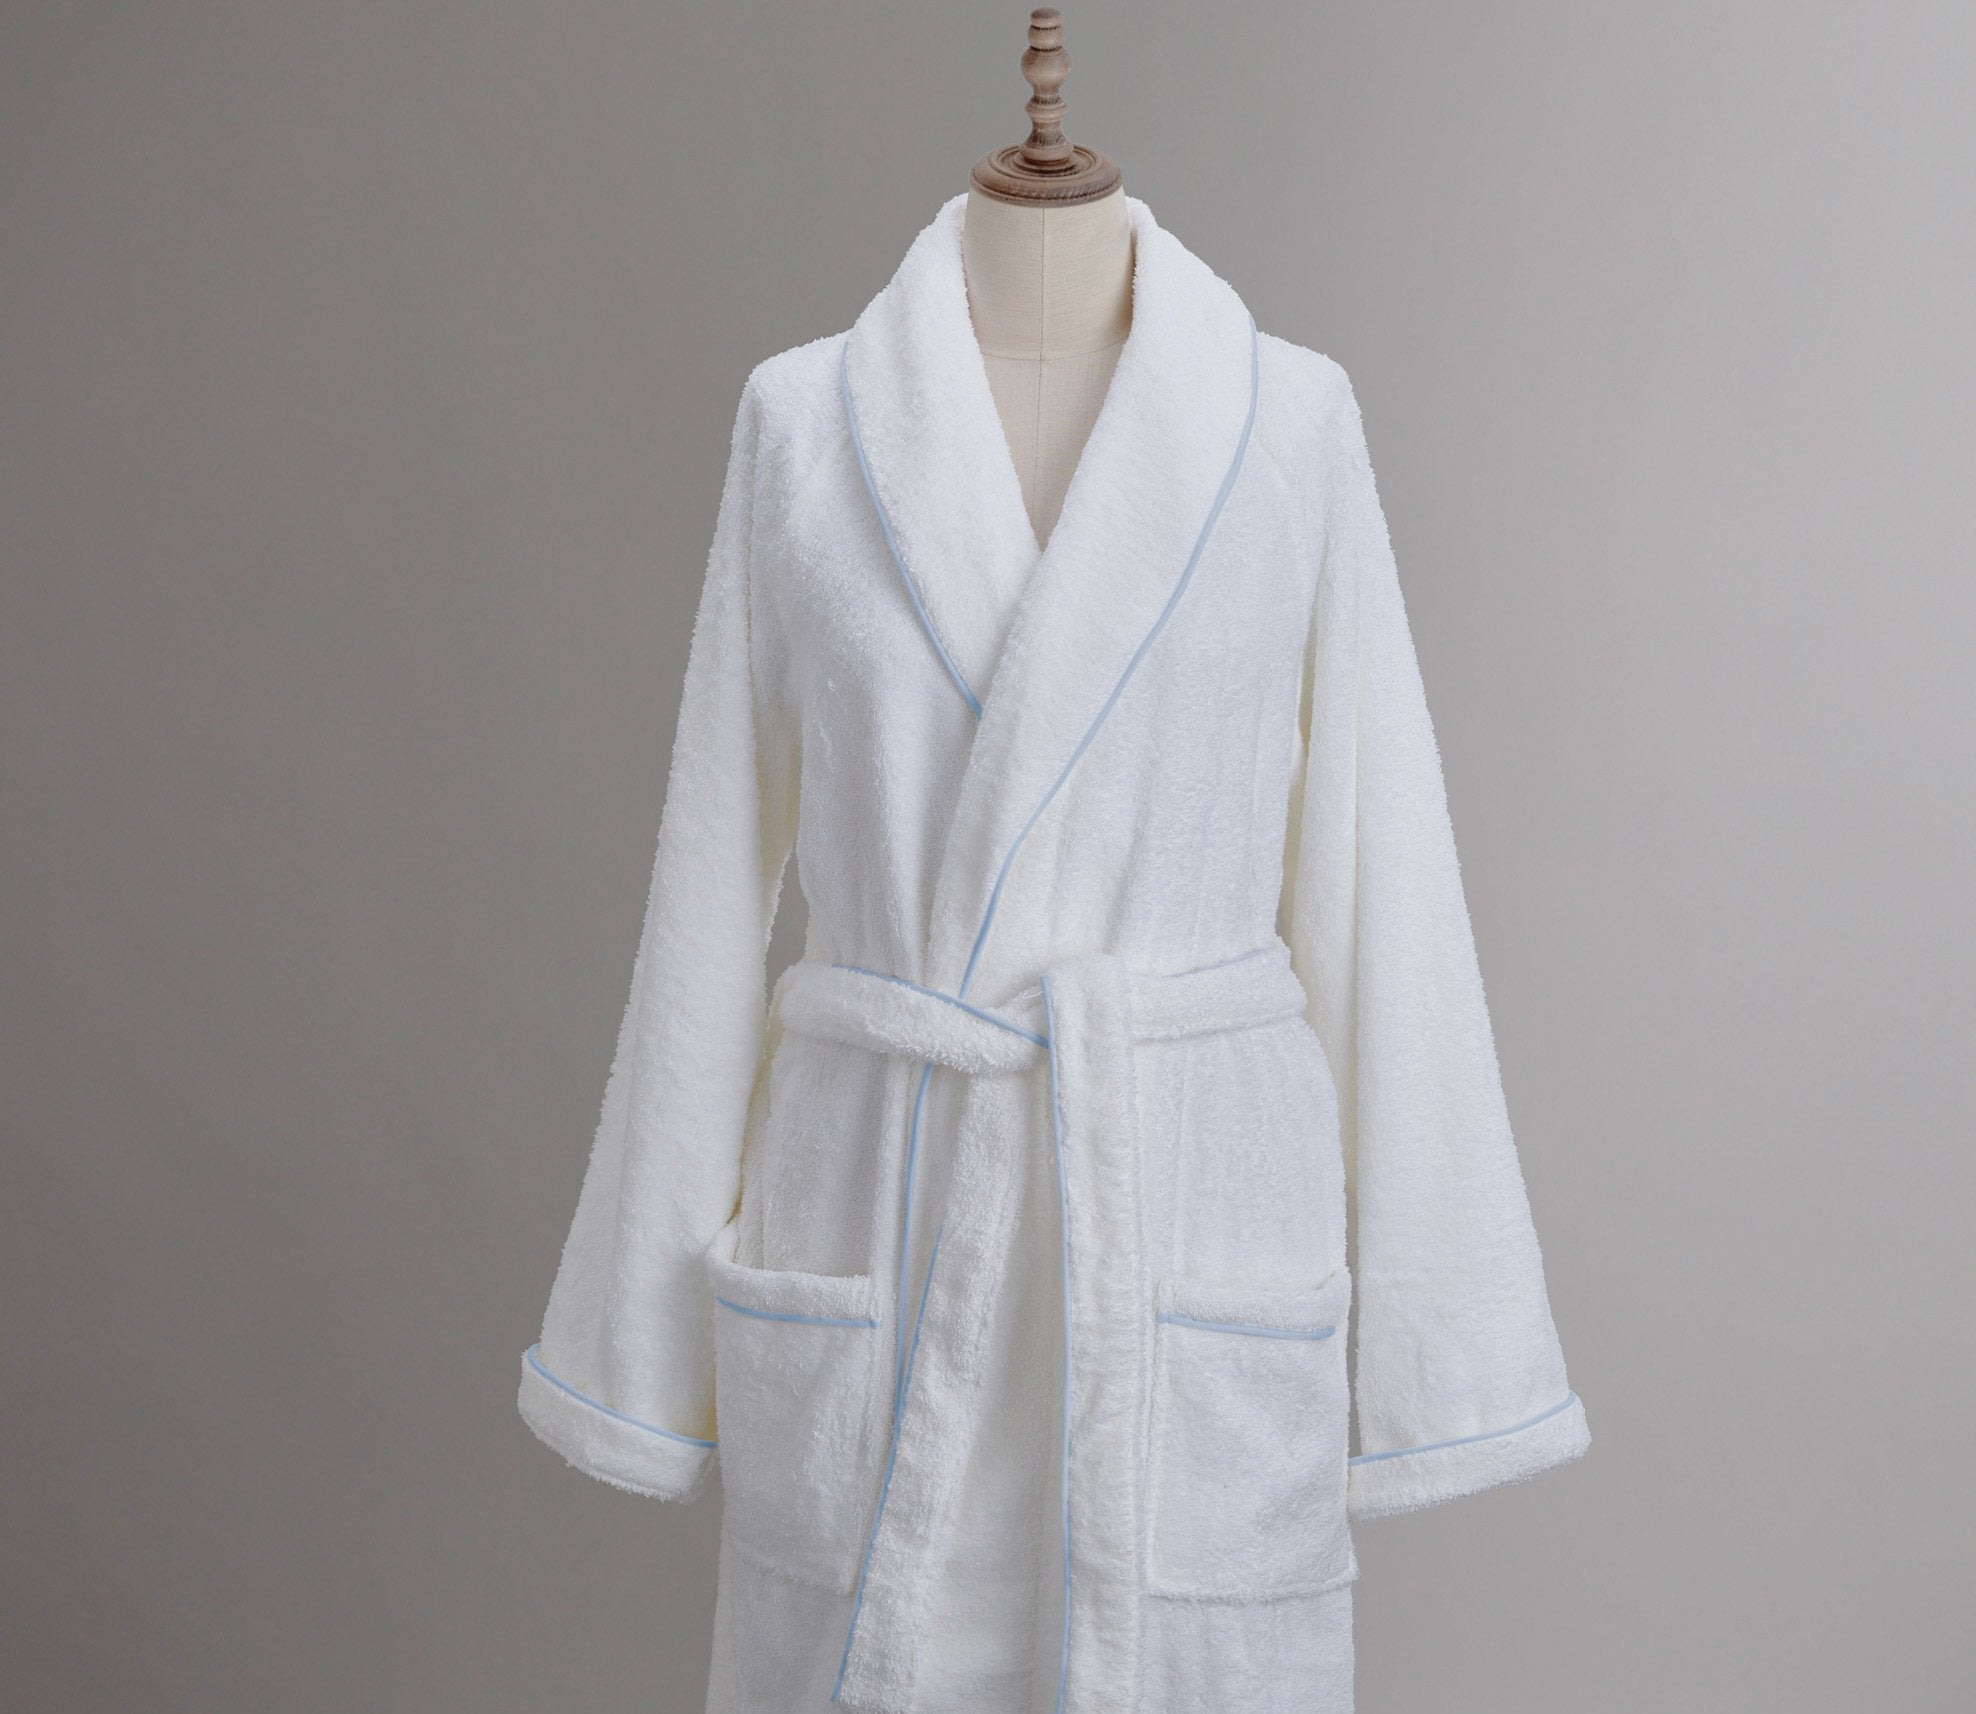 Cairo Robe White with Custom Trim Product Image 1